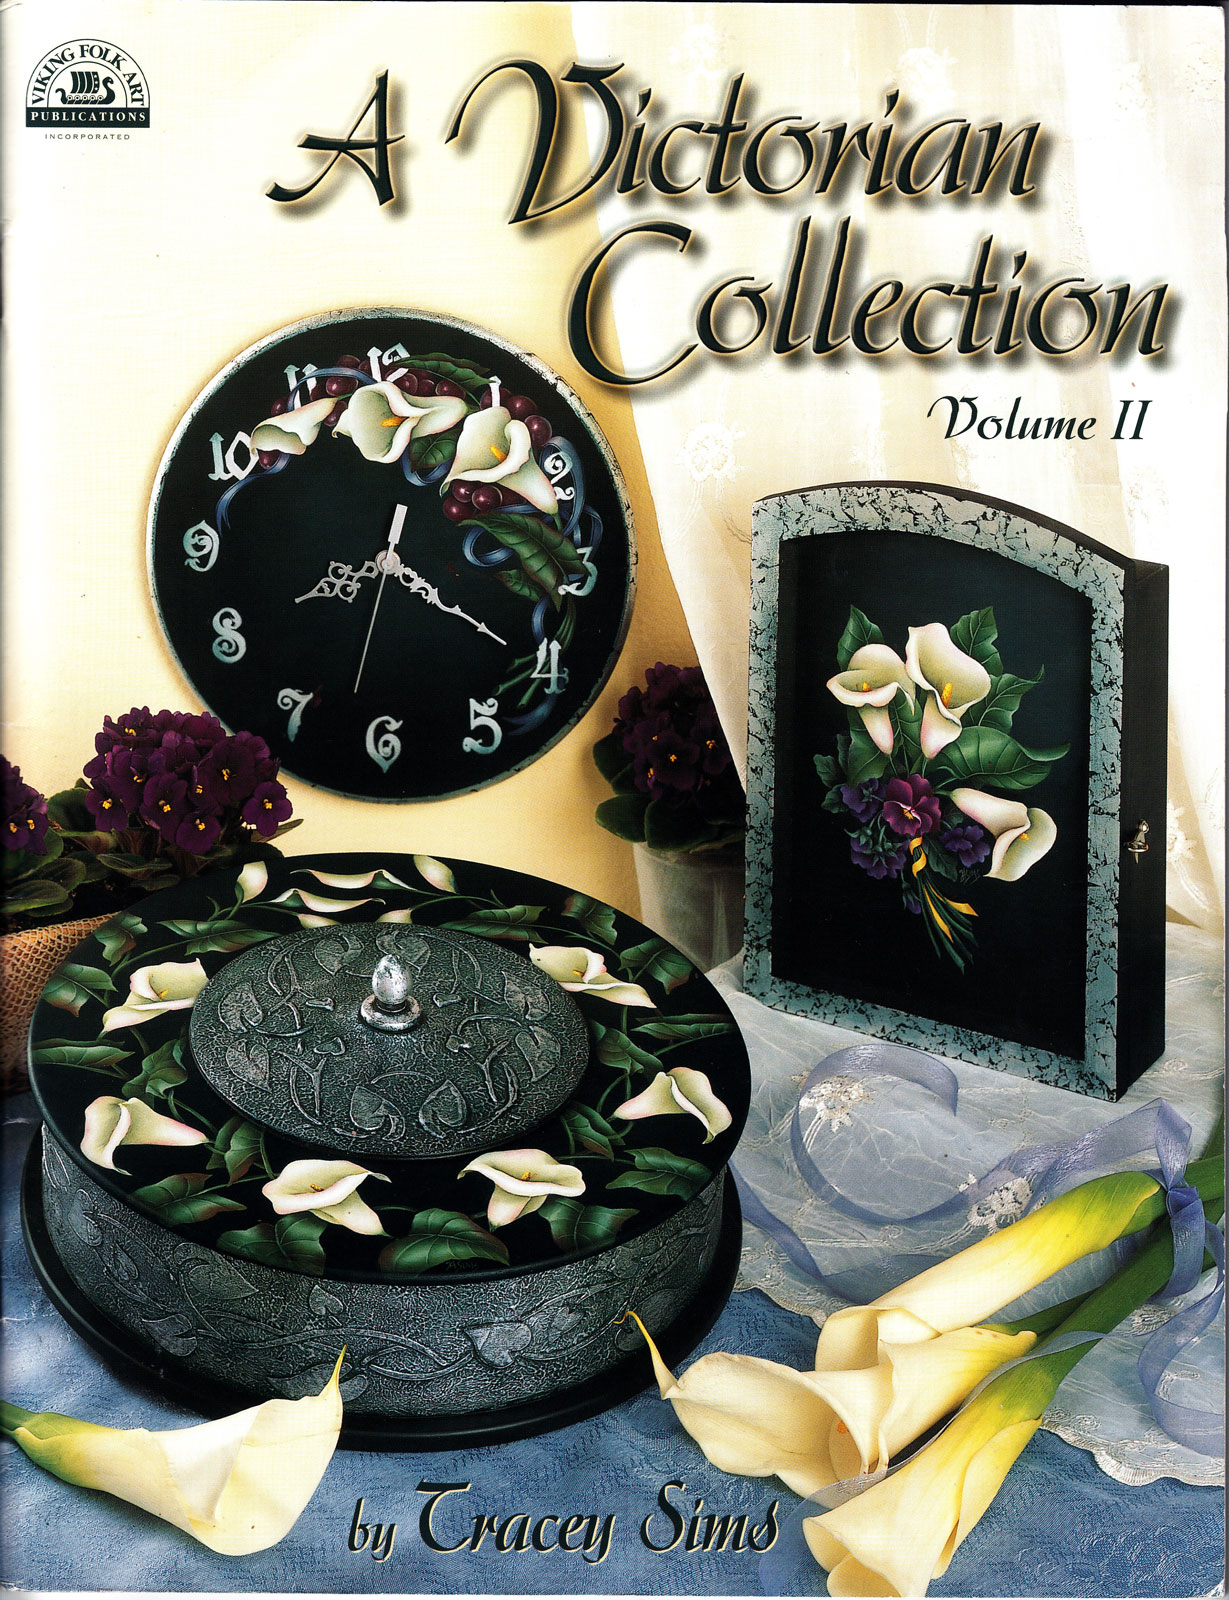 A victorian collection - Tracey Sims